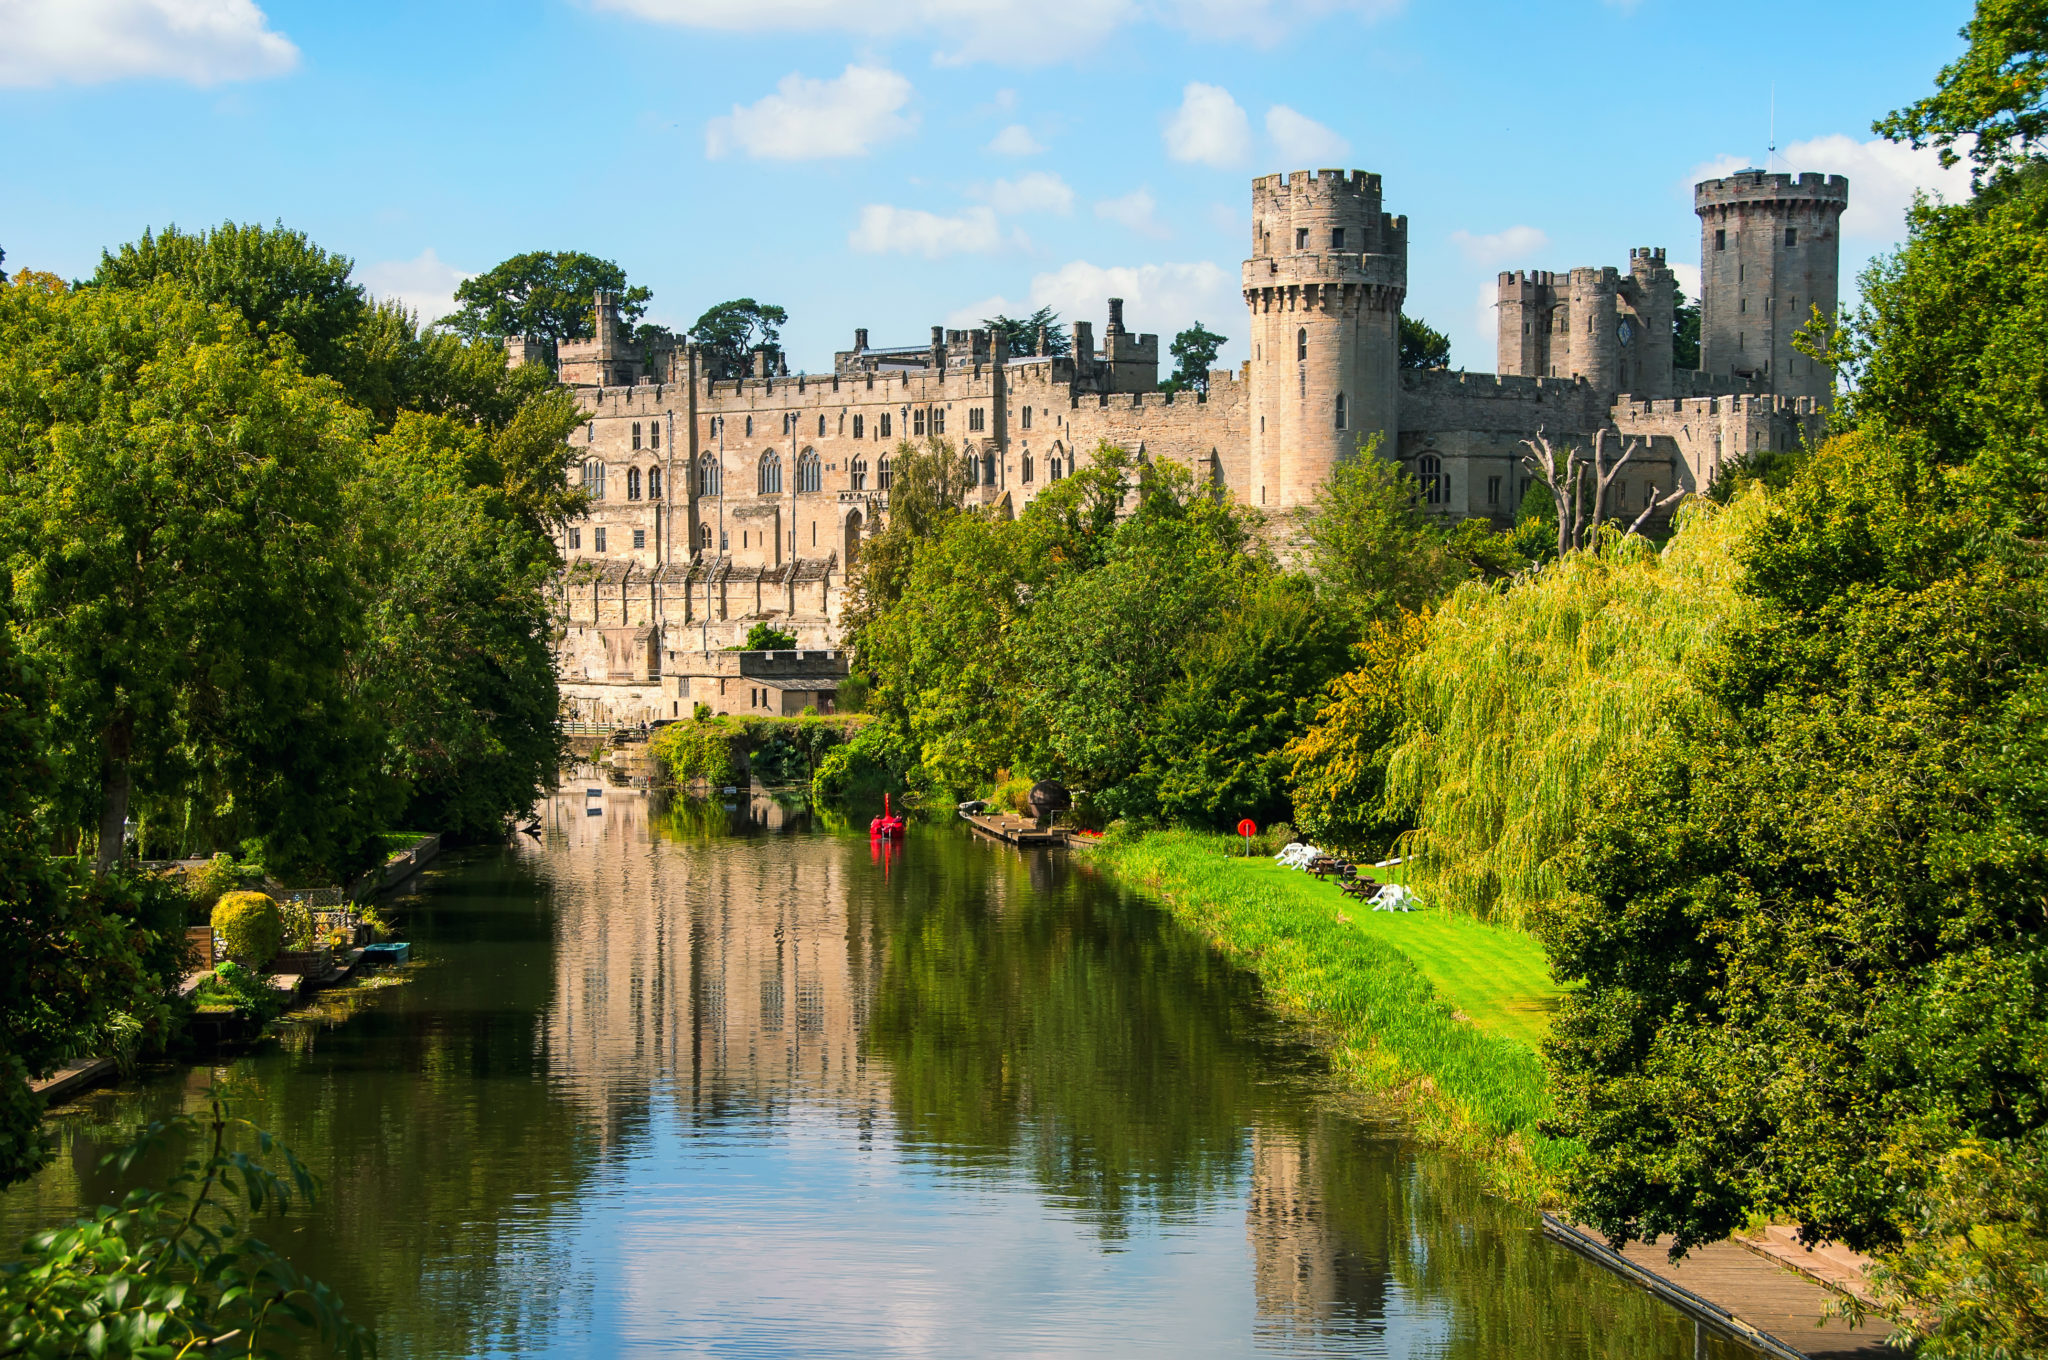 warwick castle historical sites